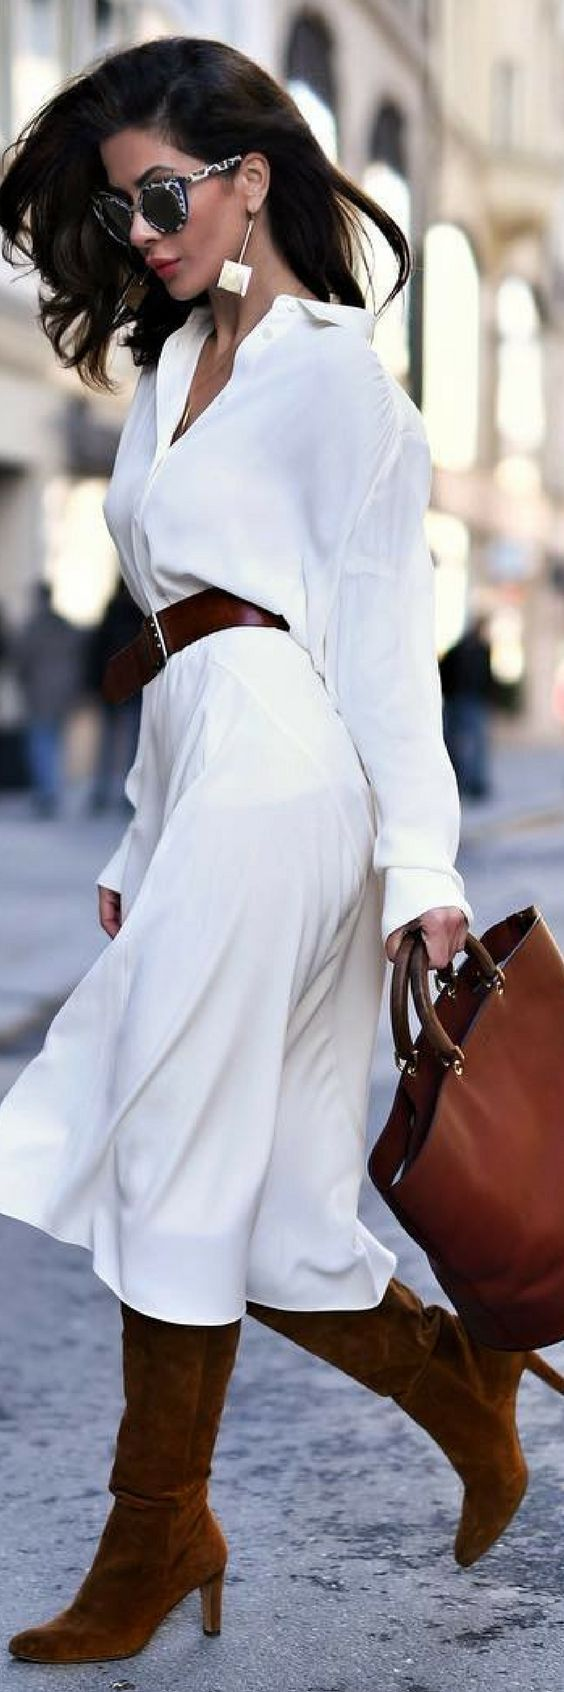 25 Of The Best Casual Friday Looks With Remarkable Comfort https://ecstasymodels.blog/2018/01/11/25-casual-friday-looks/?utm_campaign=coschedule&utm_source=pinterest&utm_medium=Ecstasy%20Models%20-%20Womens%20Fashion%20and%20Streetstyle&utm_content=25%20Of%20The%20Best%20Casual%20Friday%20Looks%20With%20Remarkable%20Comfort